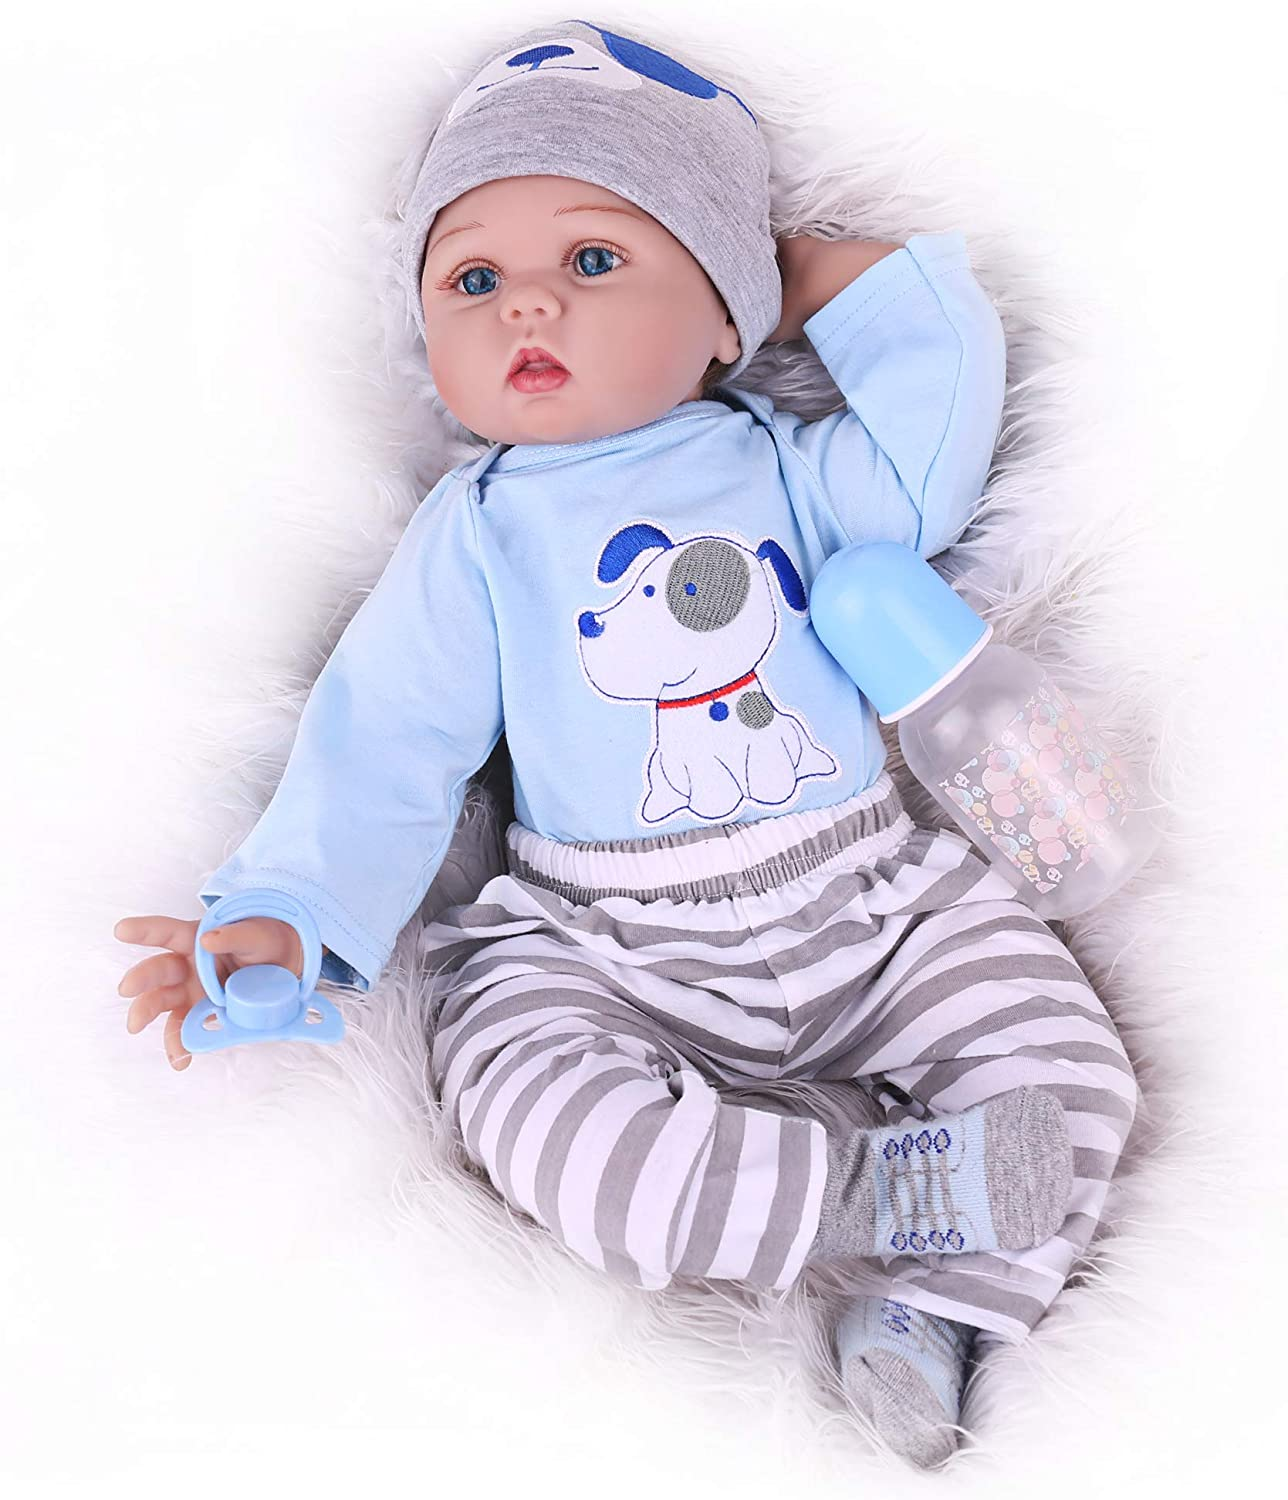 CHAREX Reborn Baby Doll, 22 Inch Baby Doll Boy, Lifelike Realistic Reborn Doll with Baby Doll Accessories for Children Age 3+